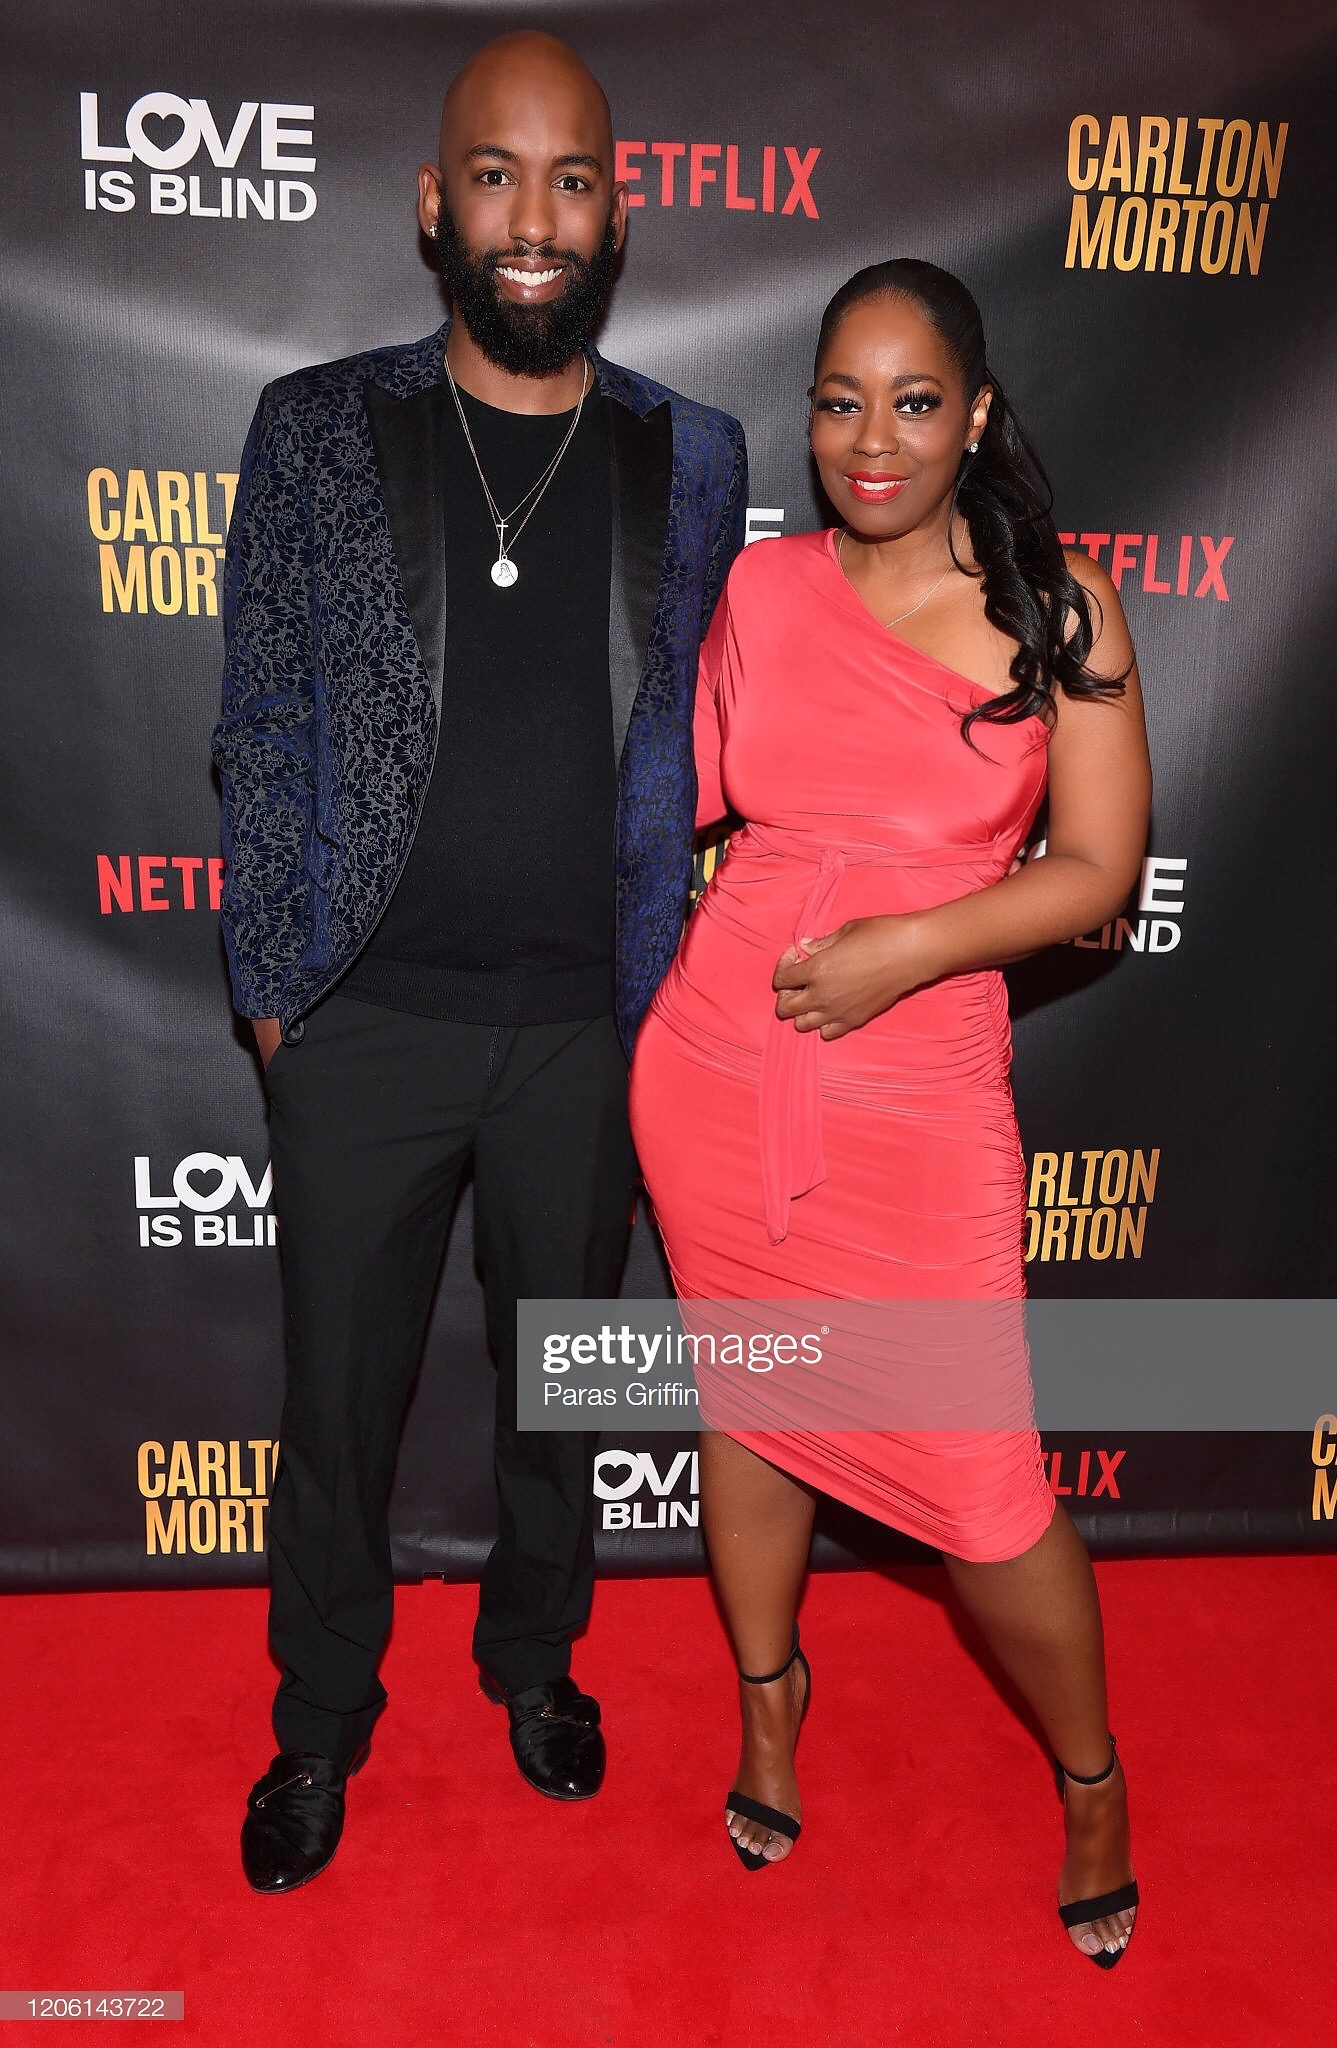 Netflix 'Love Is Blind' Viewing Party With Cast Member Cartlon Morton